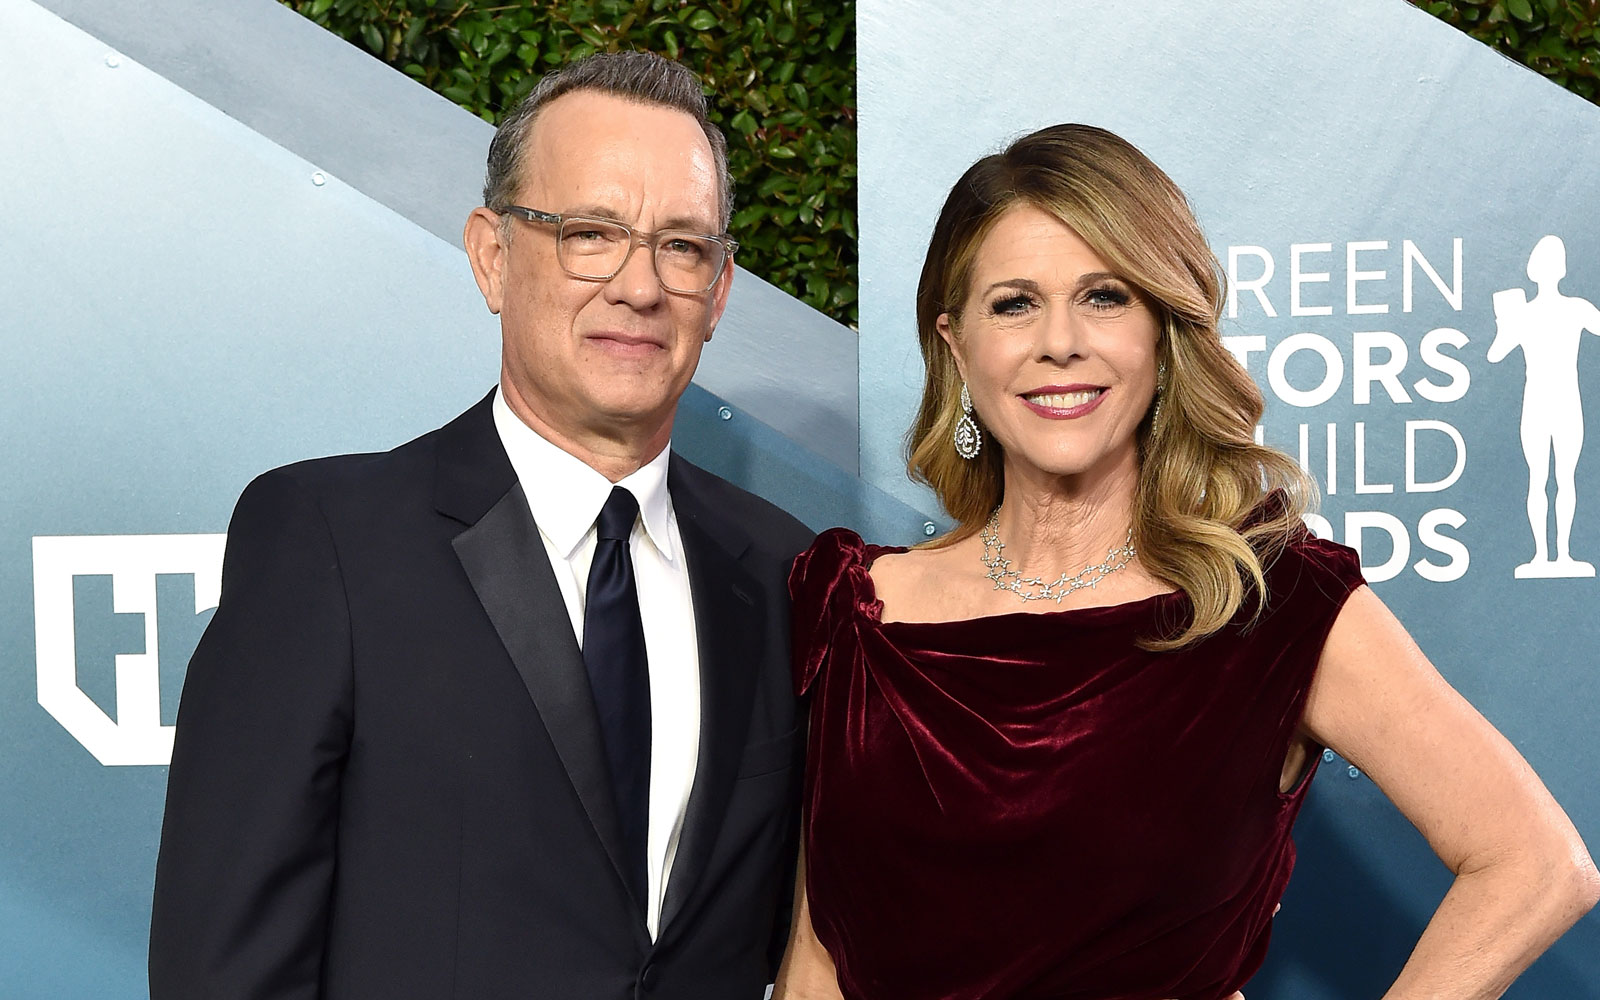 Tom Hanks and Rita Wilson attend the 26th Annual Screen Actors Guild Awards at The Shrine Auditorium on January 19, 2020 in Los Angeles, California.